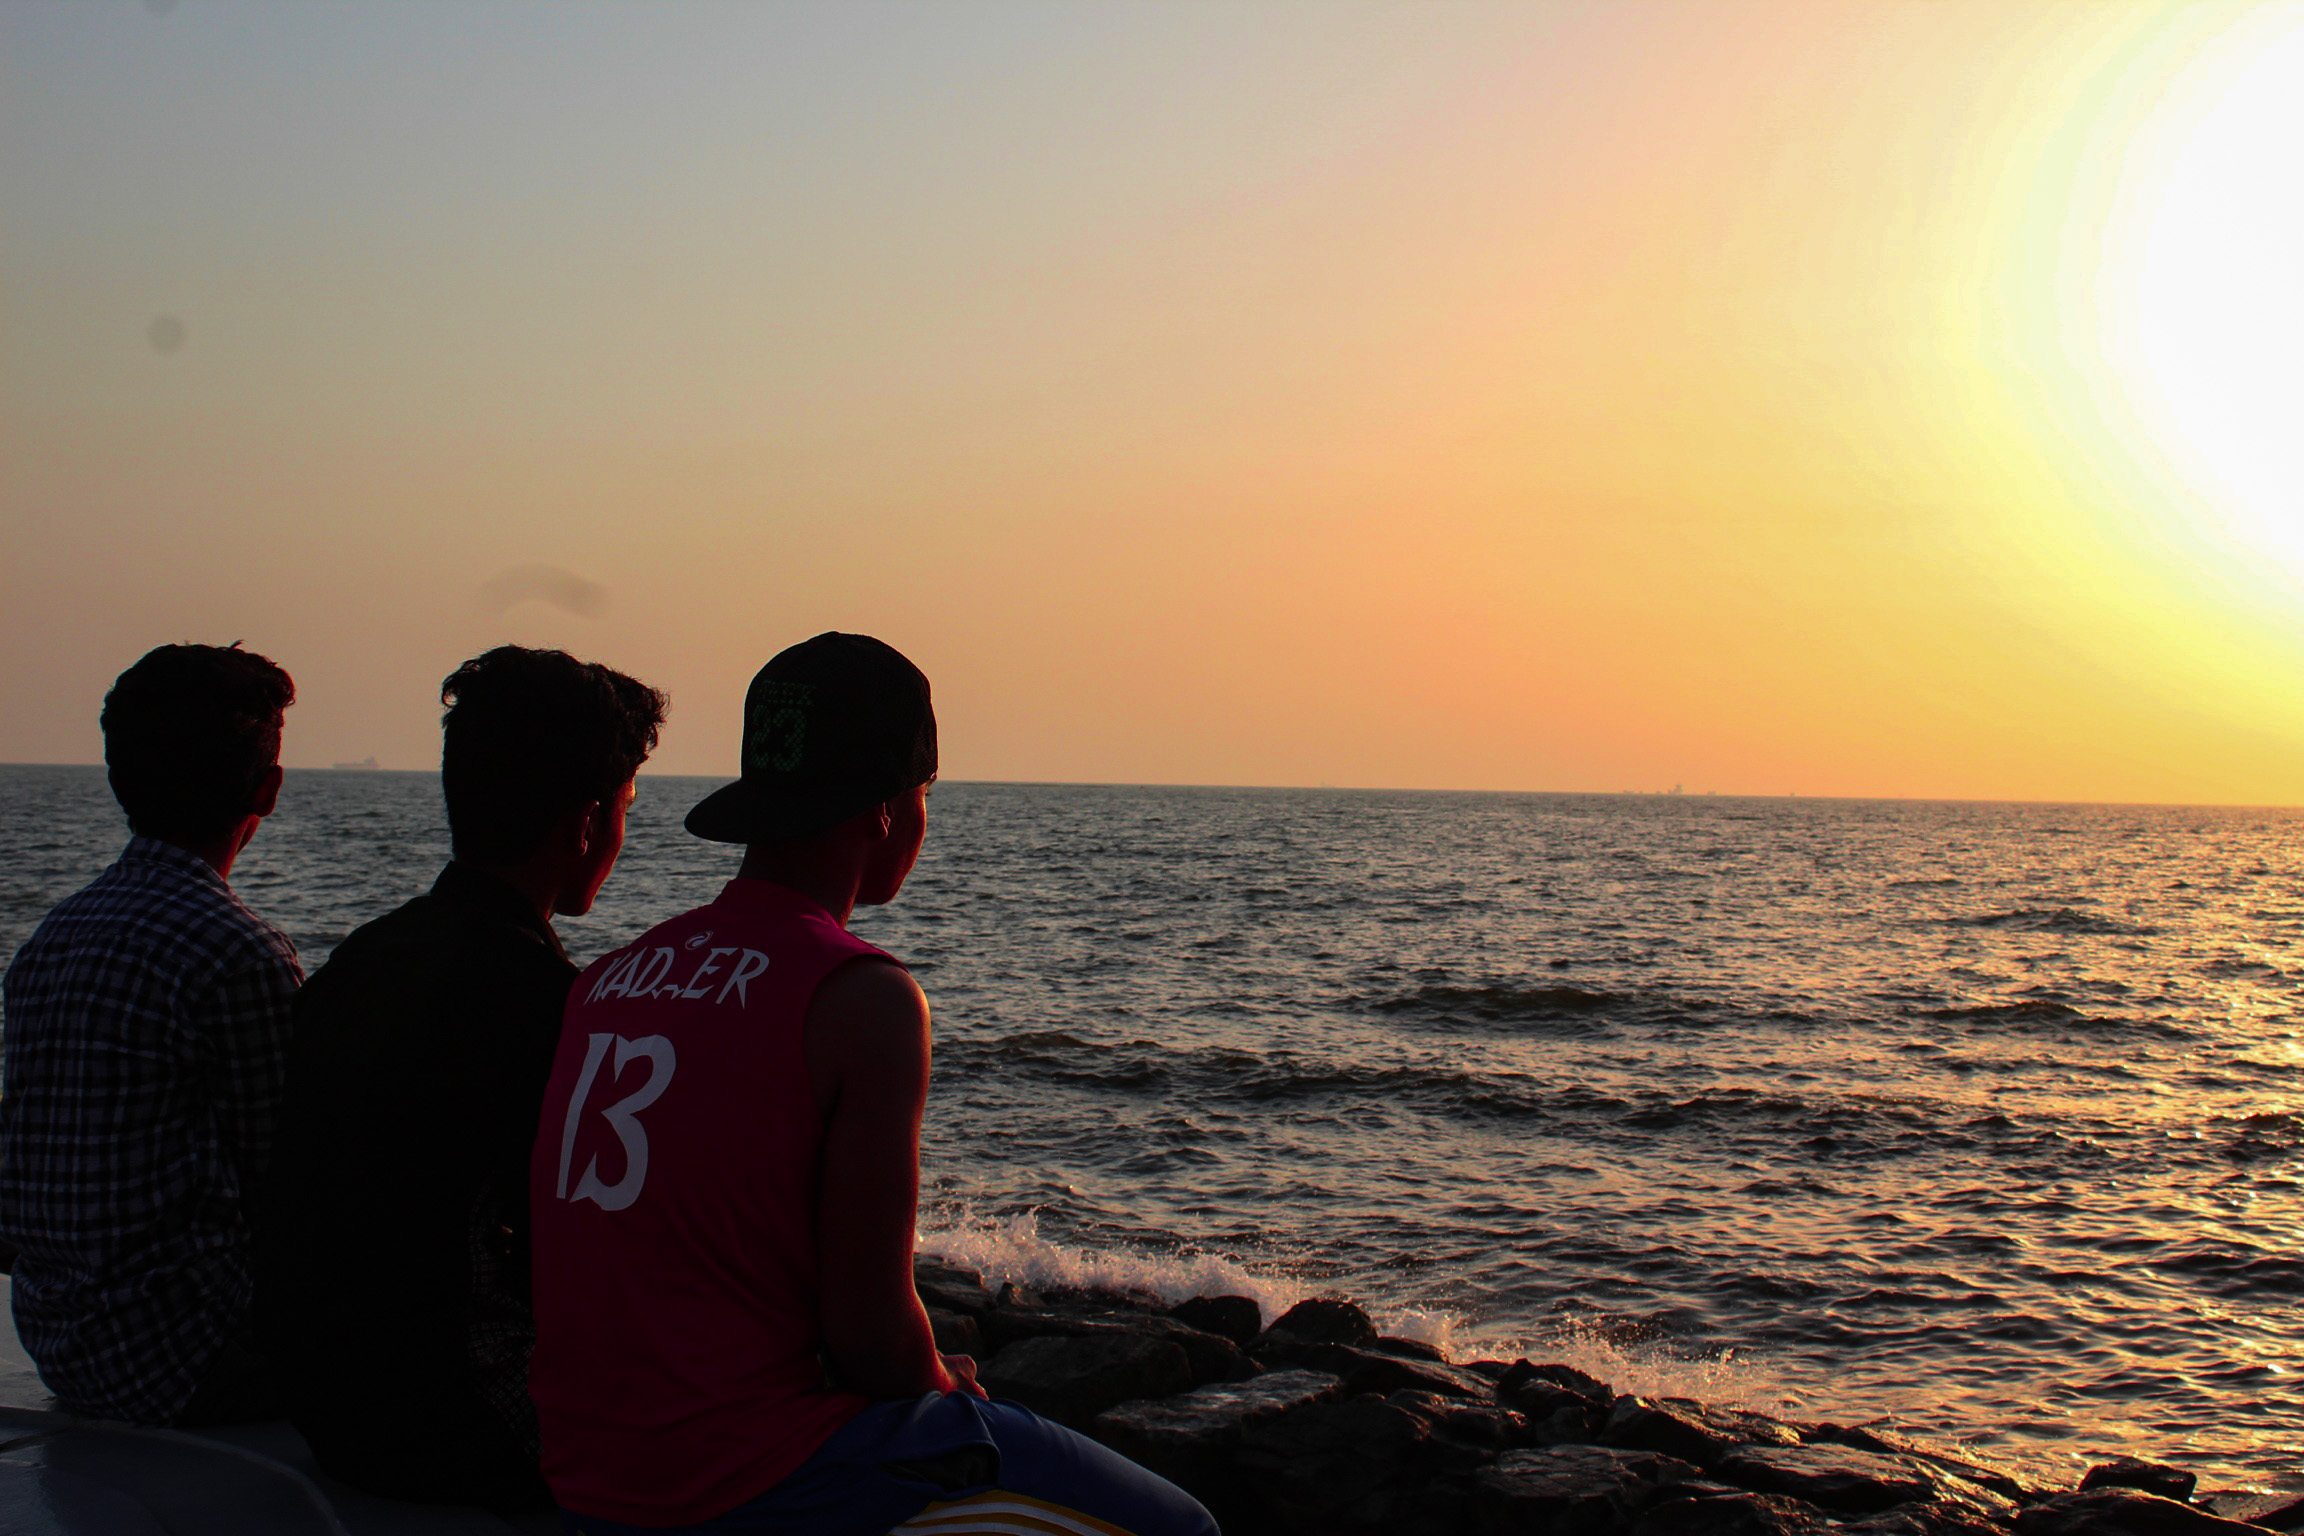 boys watching sunset at the sea